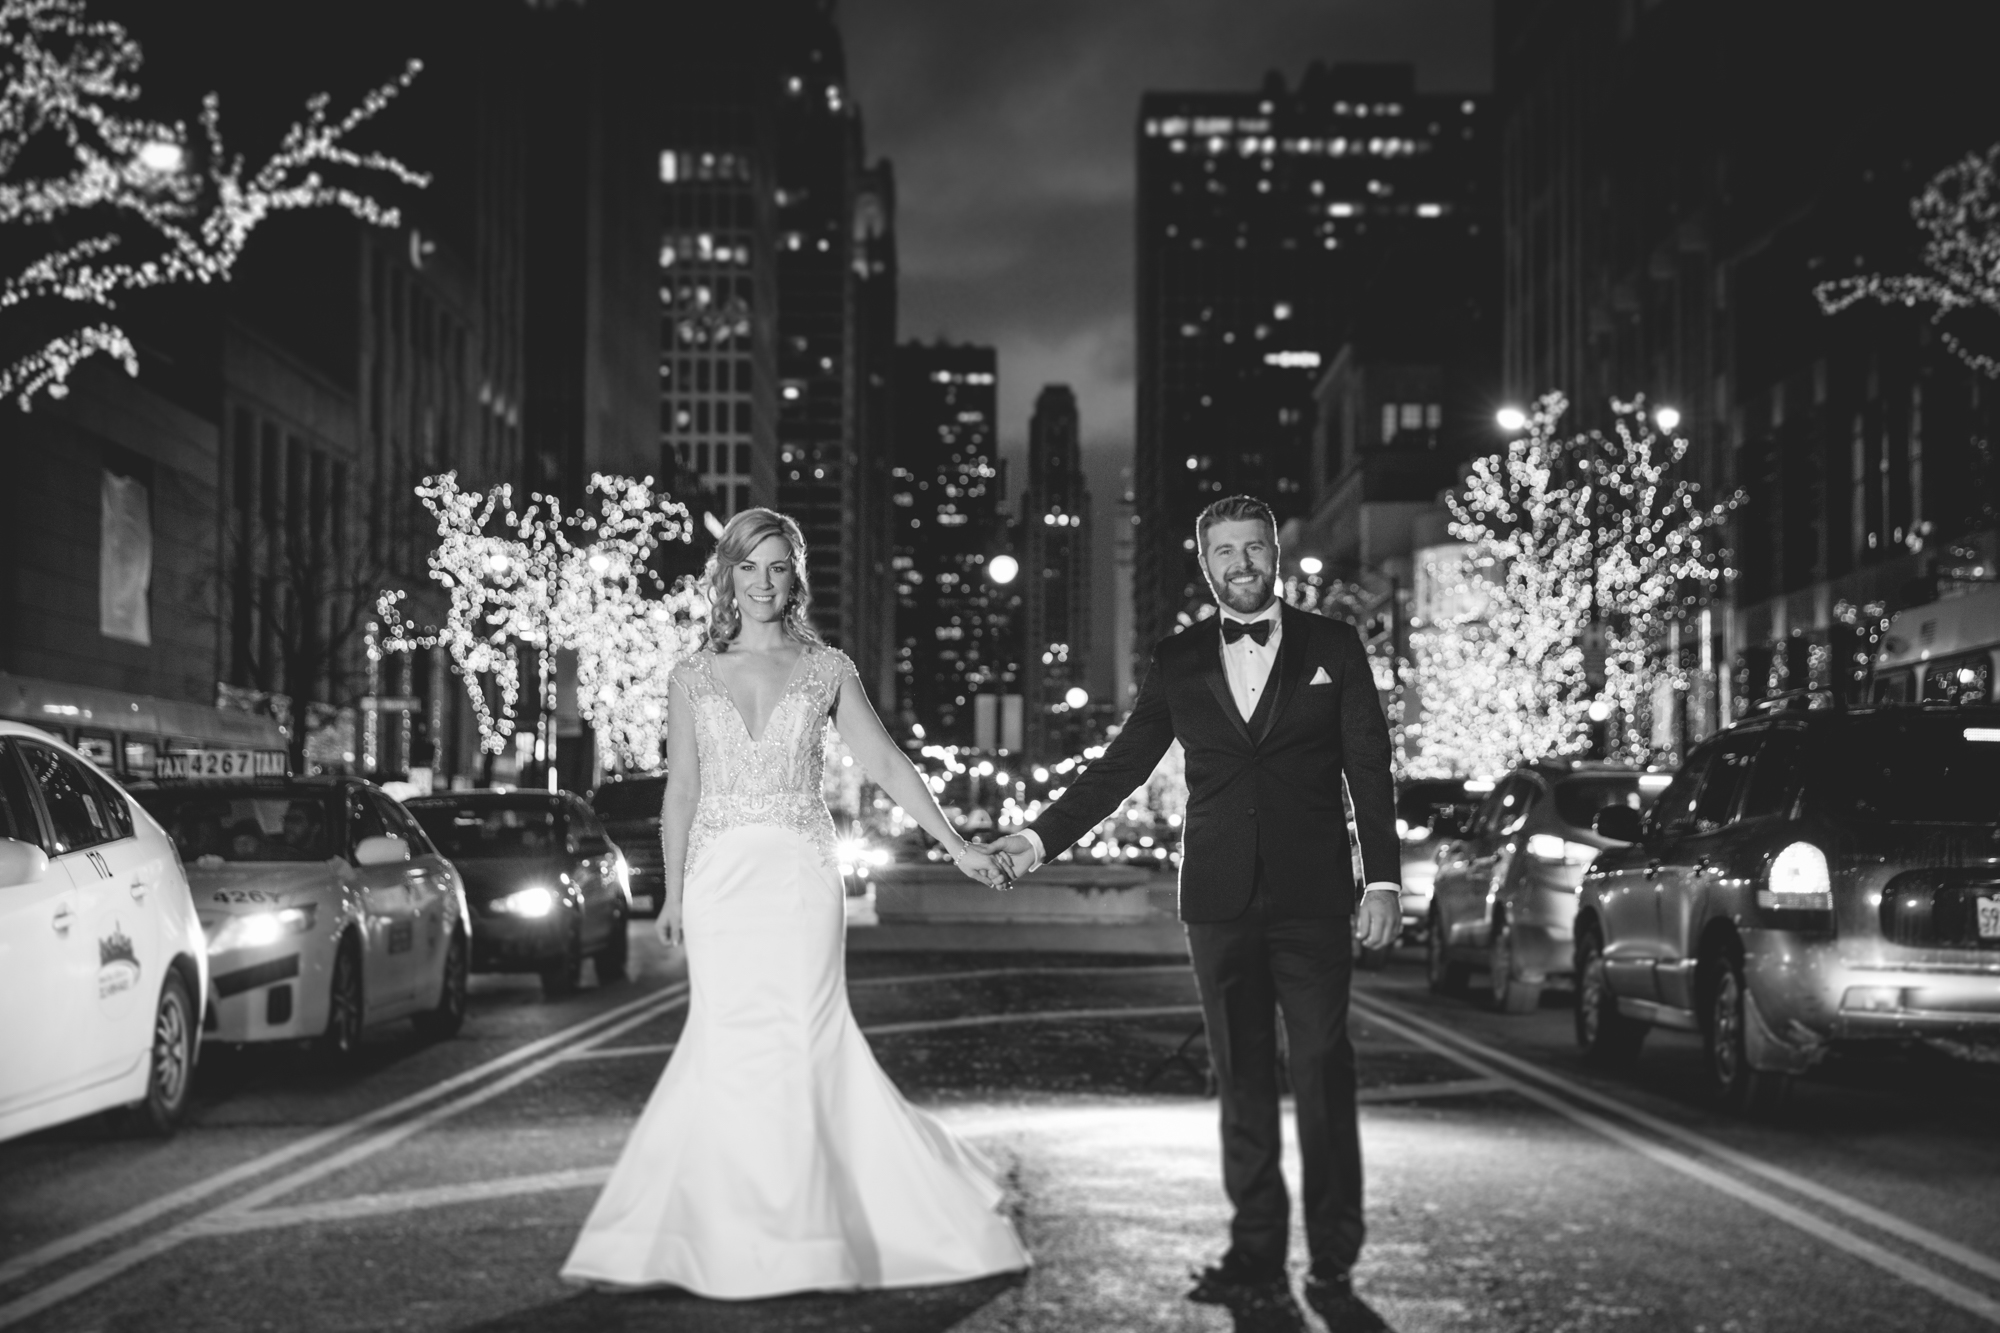 michigan-avenue-bride-and-groom.jpg